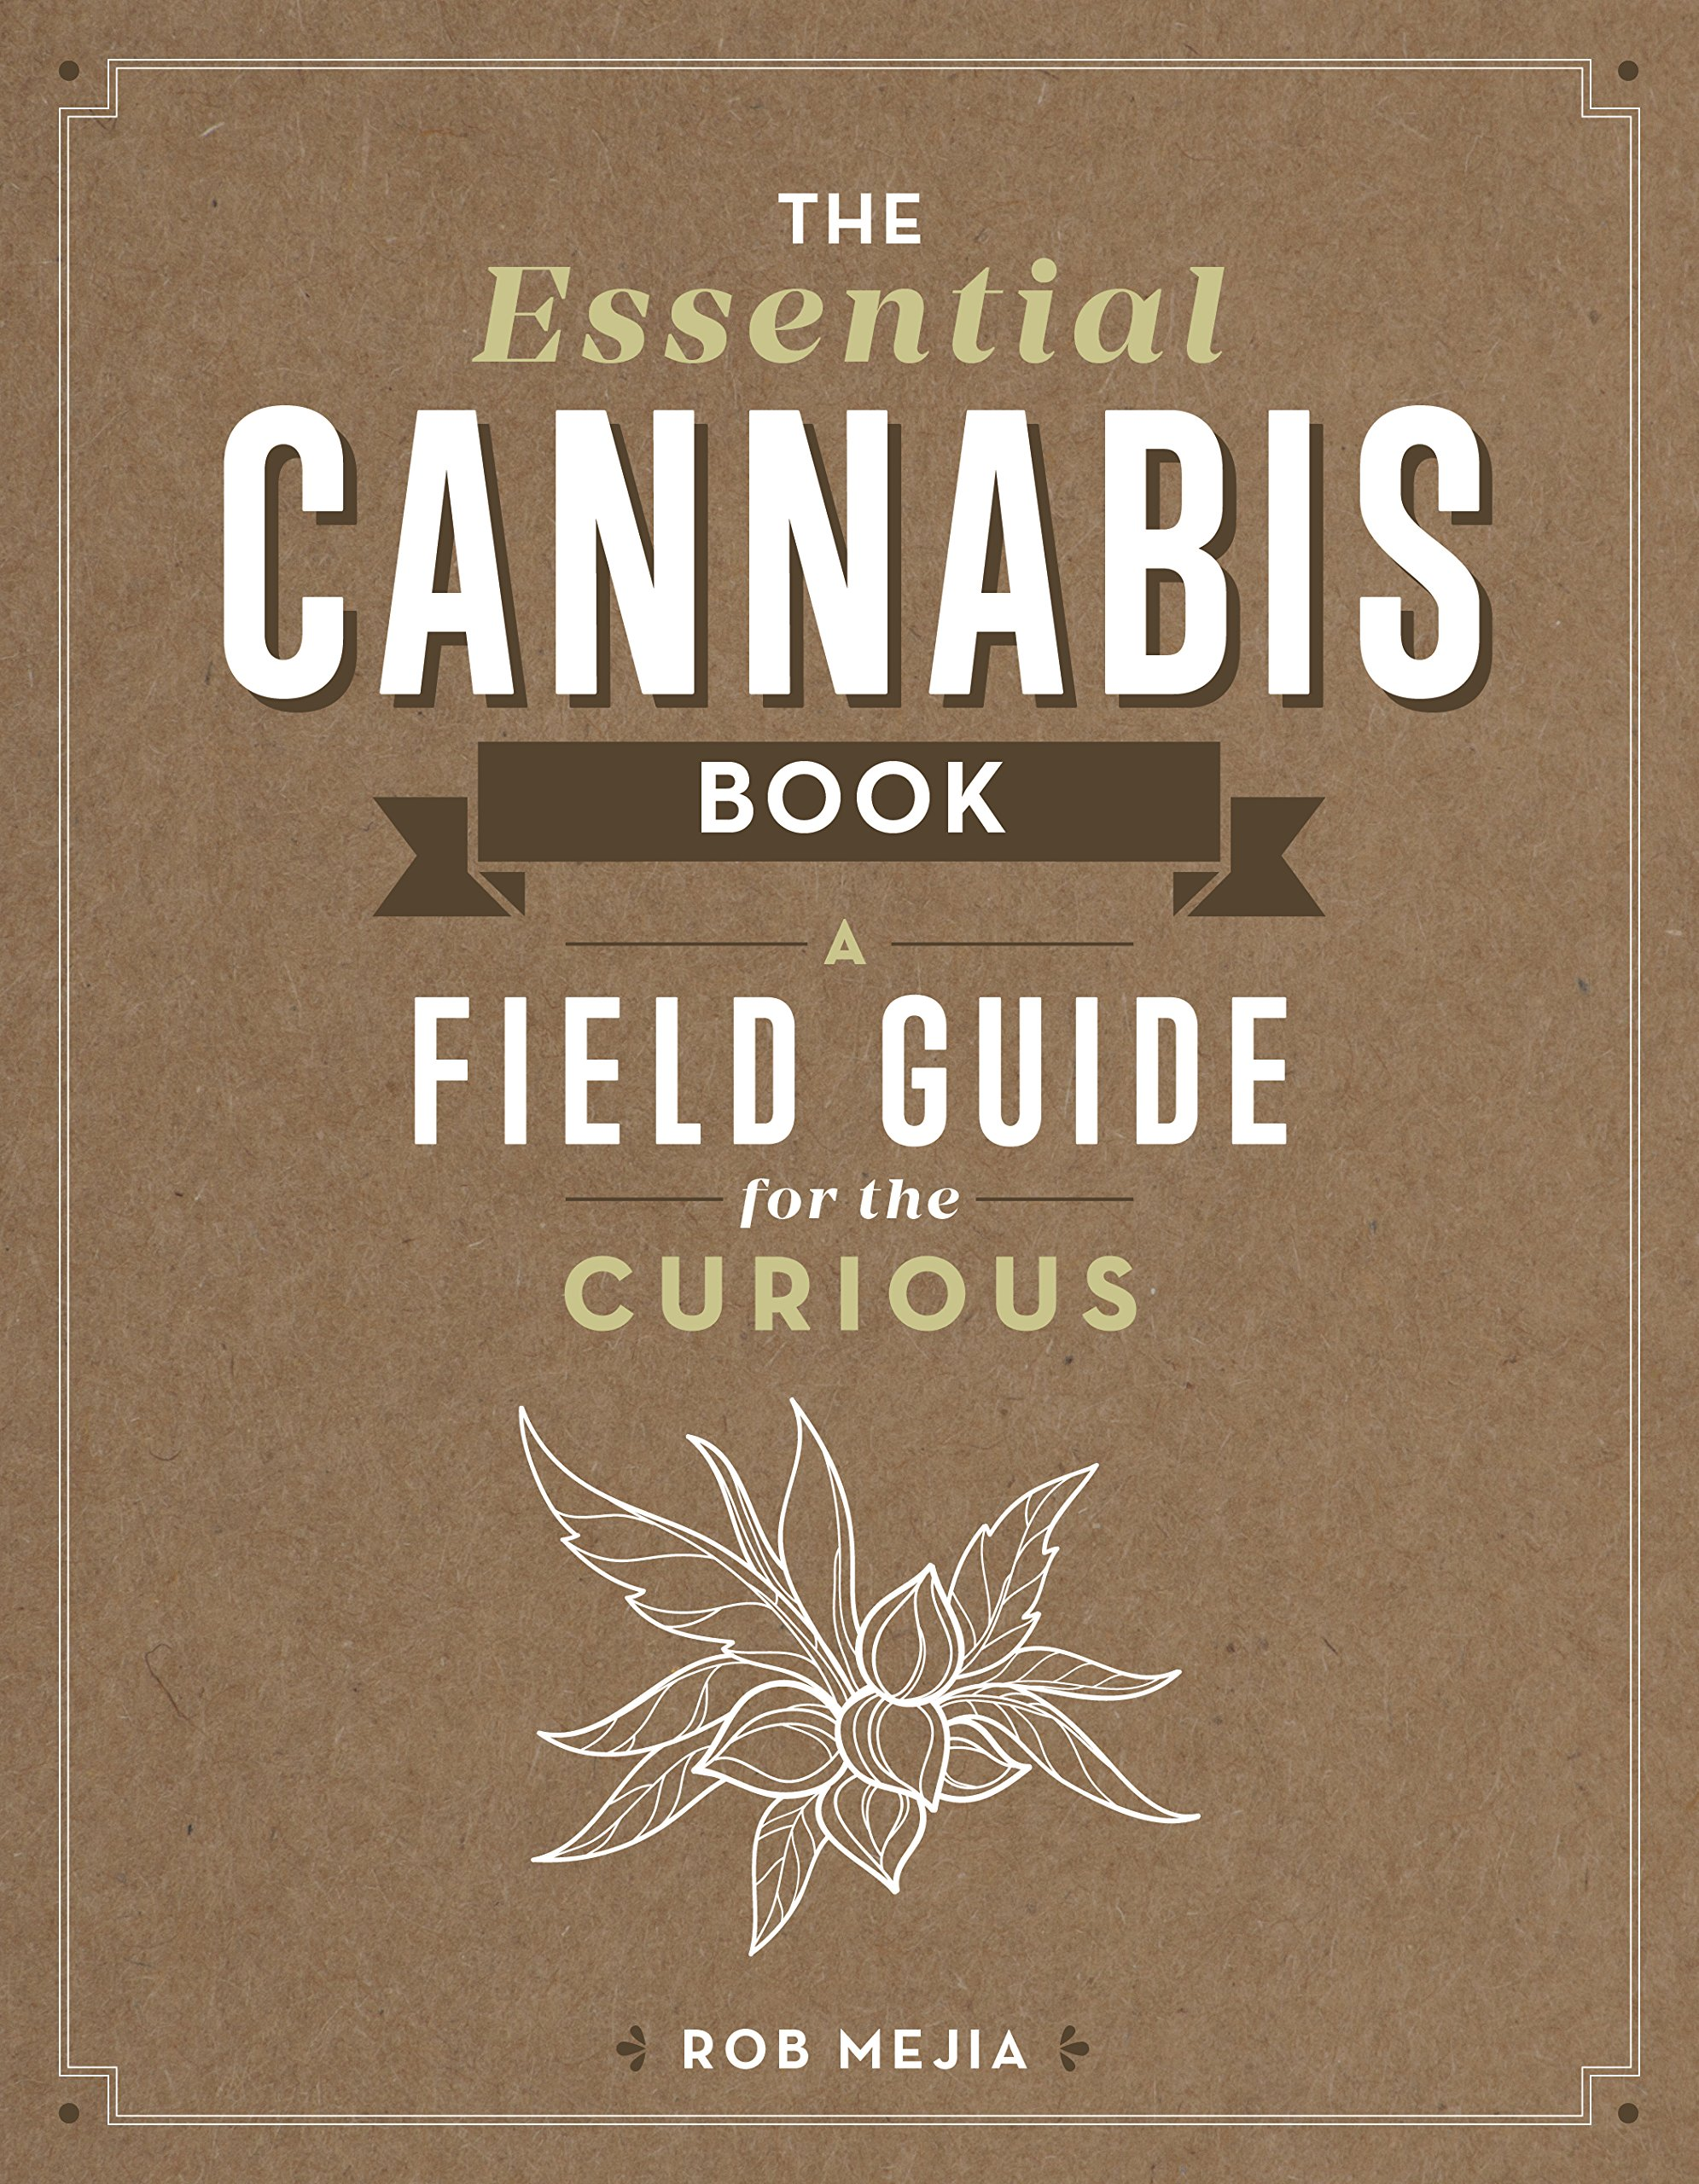 What You Will Learn - Why cannabis was vilified after it had been accepted medicine for centuries; and howother parts of the world are embracing cannabisWhat medical conditions respond best to cannabisHow to navigate a dispensary and find the cannabis strain that works for youHow to responsibly consume cannabis and advantages and drawbacks for each type of useHow to cook with cannabisRecipes that work well with cannabis infusionsPREVIEW THE BOOK NOW